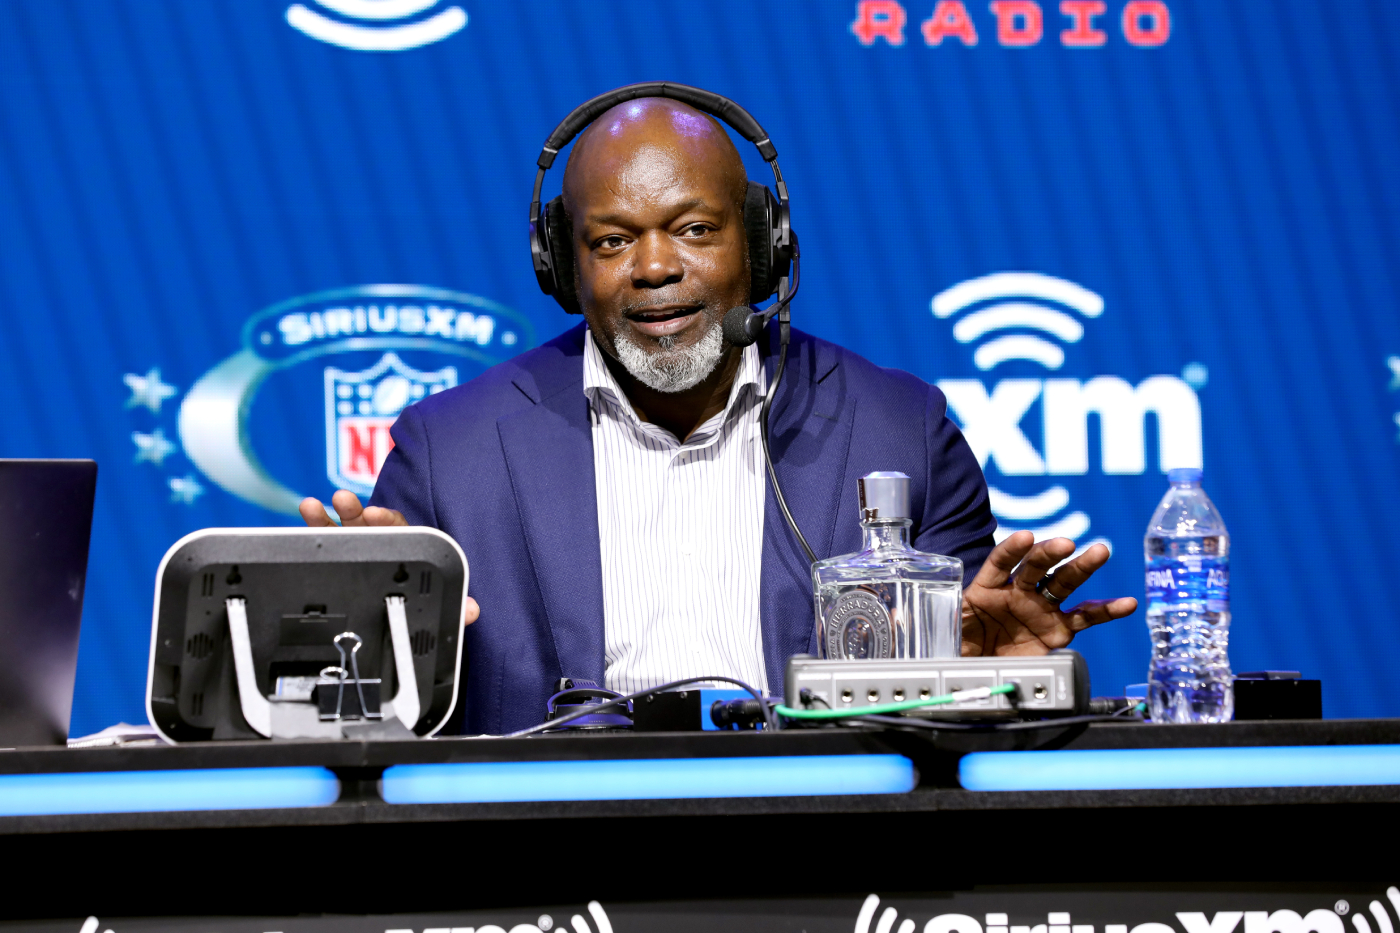 The Dallas Cowboys have been horrible so far this season. Emmitt Smith is forgetting about their struggles by working with NASCAR.